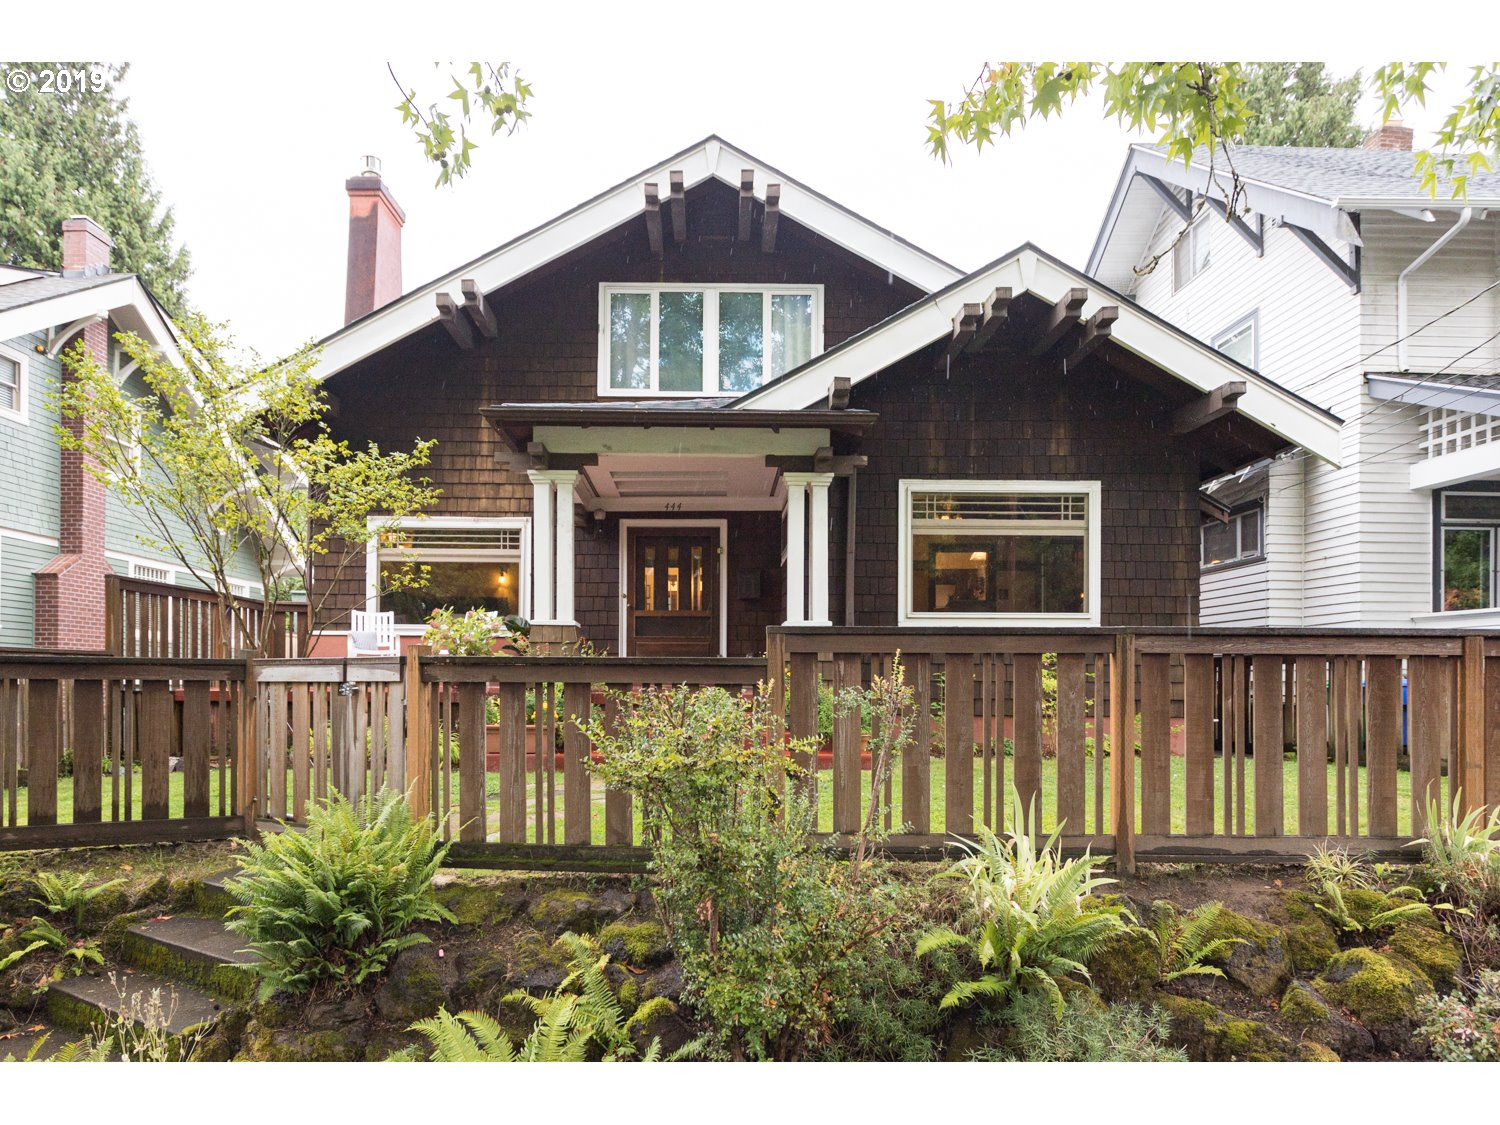 Beautiful and charming 1911 American Arts and Crafts Bungalow in classic Laurelhurst! Loads of gorgeous original unpainted woodwork and builtins throughout. Complete with a high efficiency furnace, central air and central vacuum! Enjoy sidewalk strolls through the treelined streets, dining and shops on NE 28th Ave.  Three bedrooms, two full bath, plus bonus main floor flex room, backyard deck and front yard patio! Not to be missed!